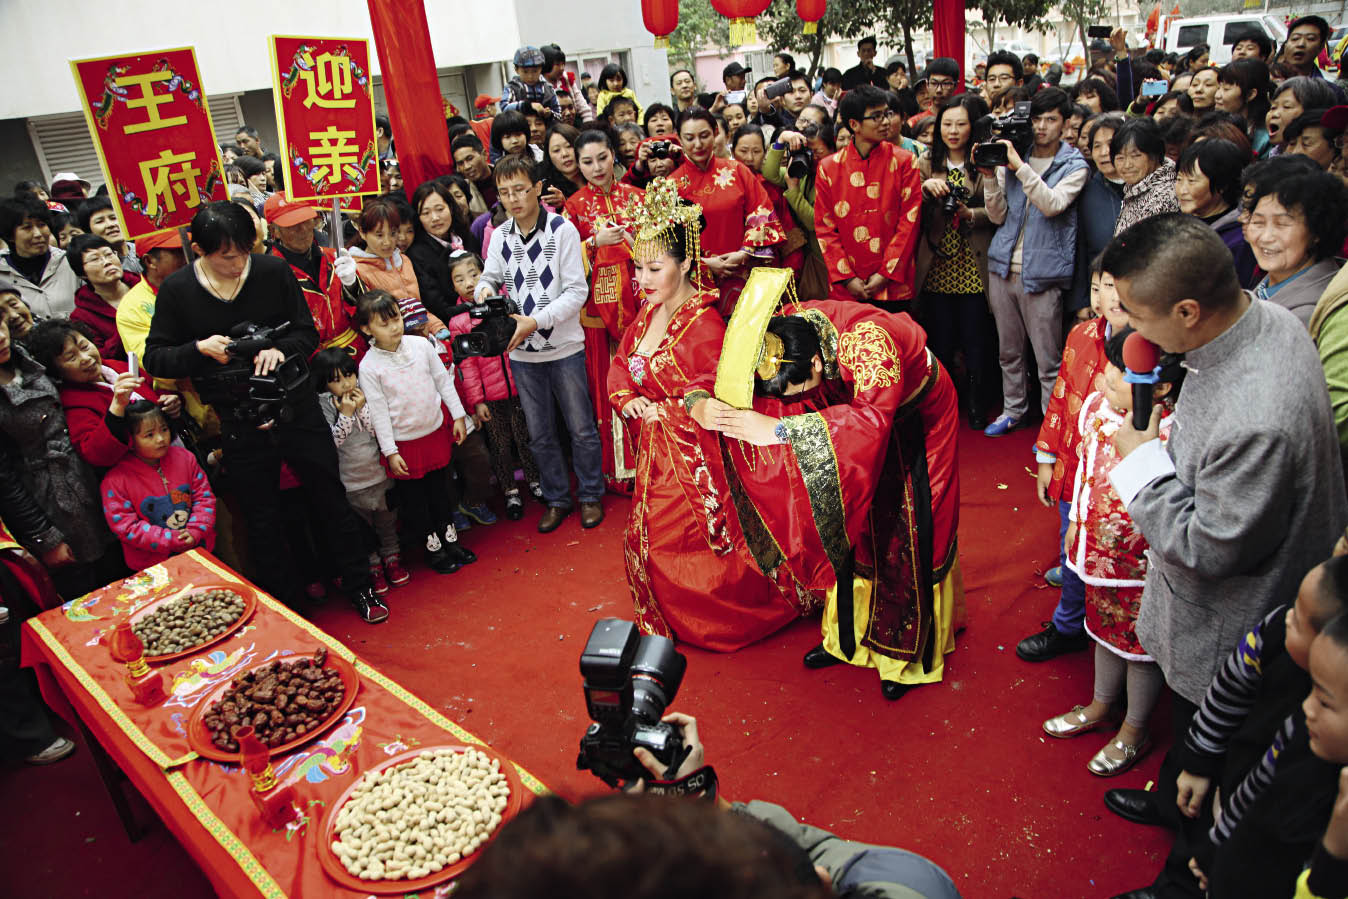 The Bride And Groom Kowtow To Heaven Earth At Their Wedding Ceremony On March 9 2017 In Rizhao City Of Shandong Province